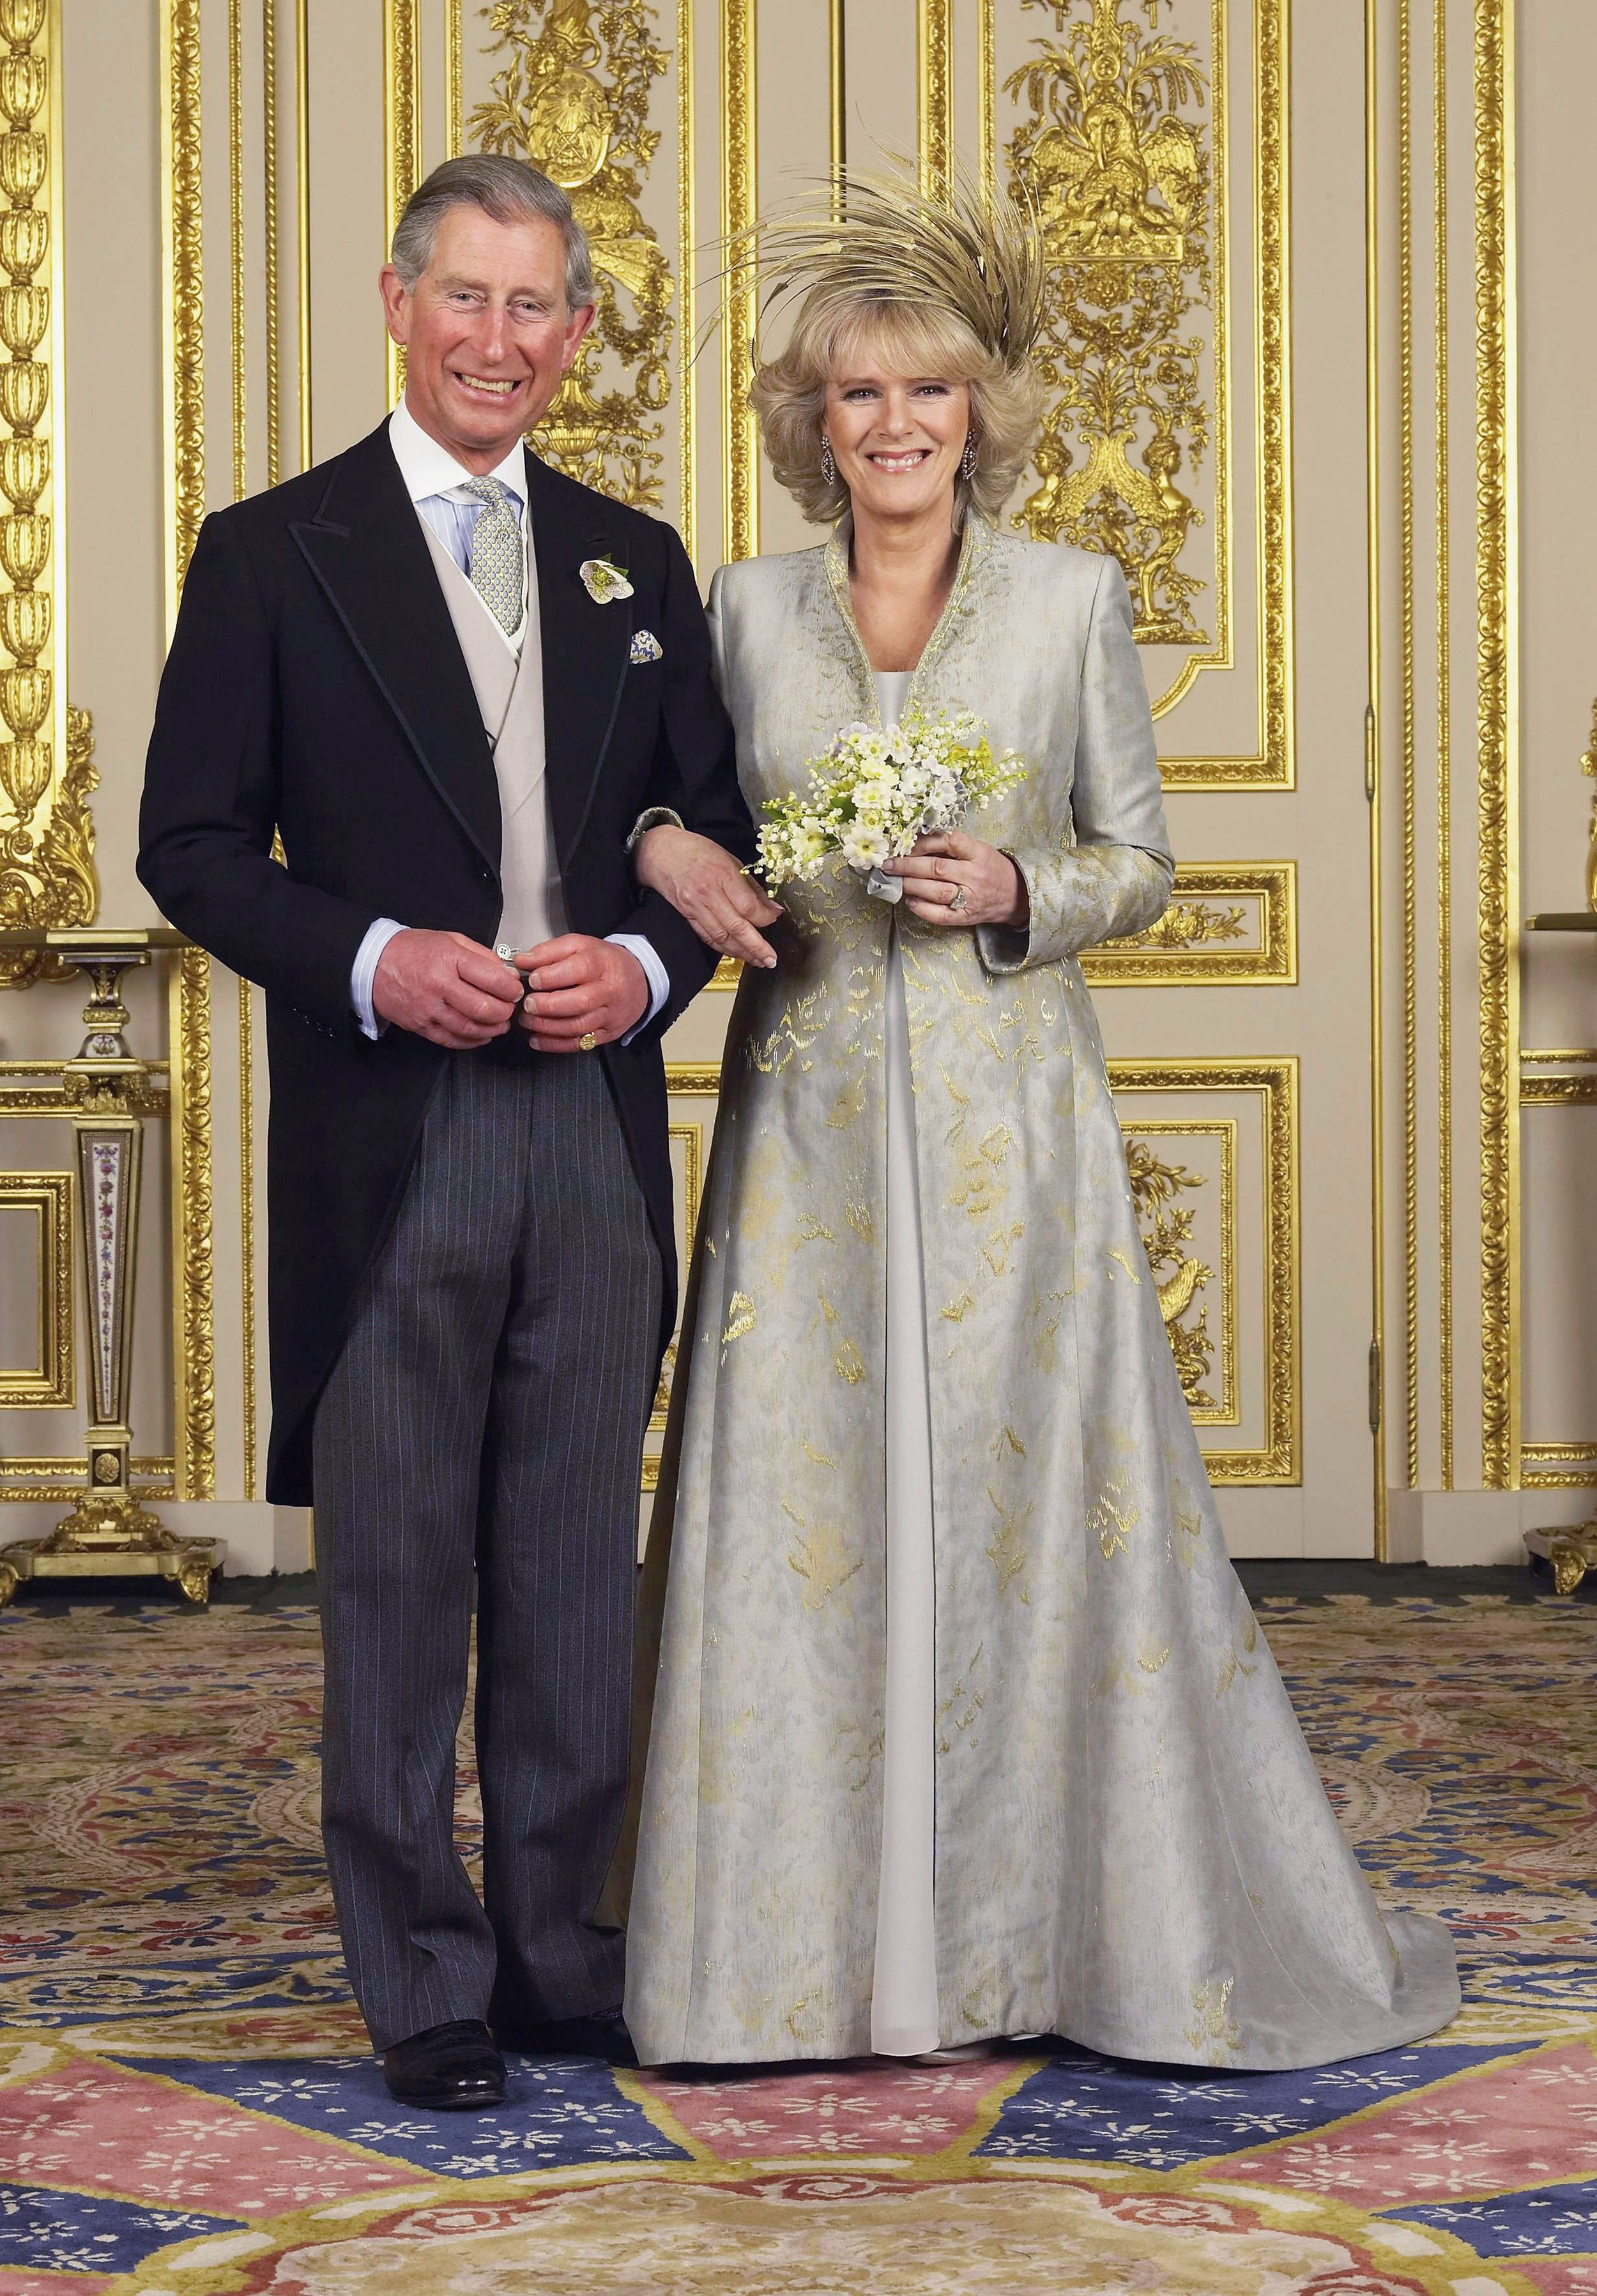 The Best Royal Wedding Dresses of the Last 70 Years - Royal Wedding ...